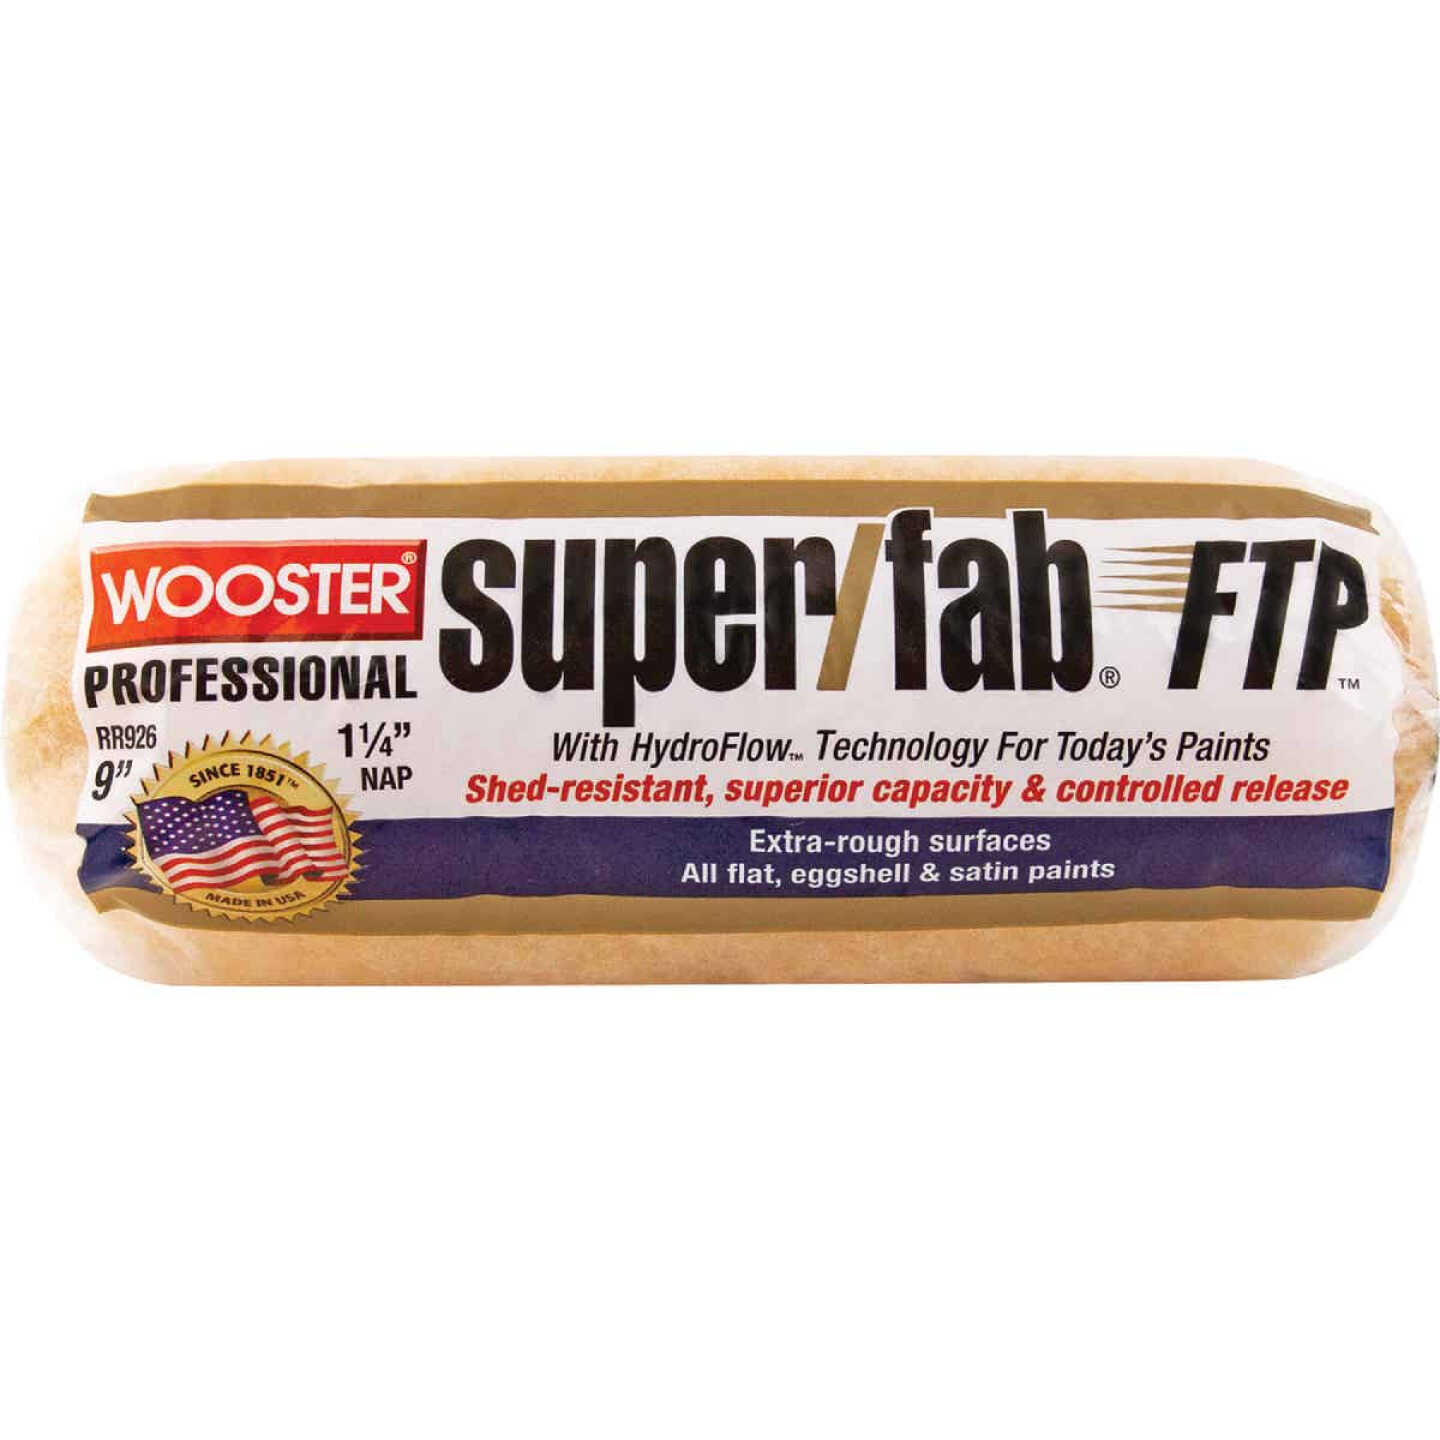 Wooster Super/Fab FTP 9 In. x 1-1/4 In. Knit Fabric Roller Cover Image 1